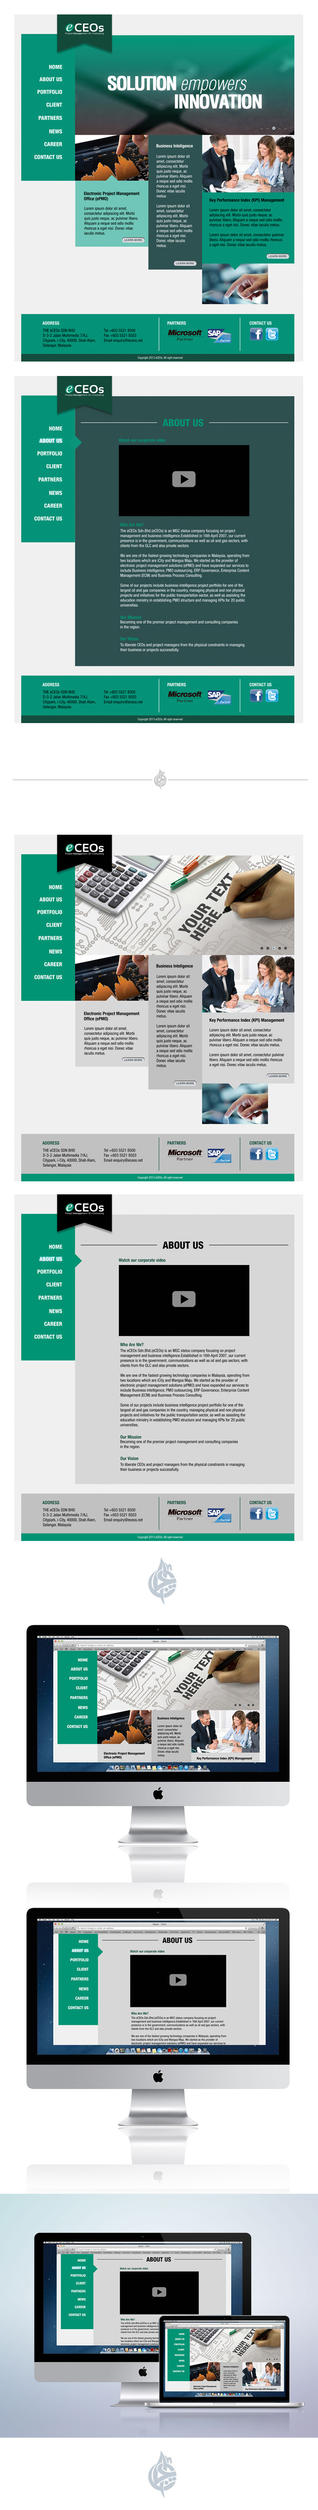 eCEOs Website Design 2 by AimanMD